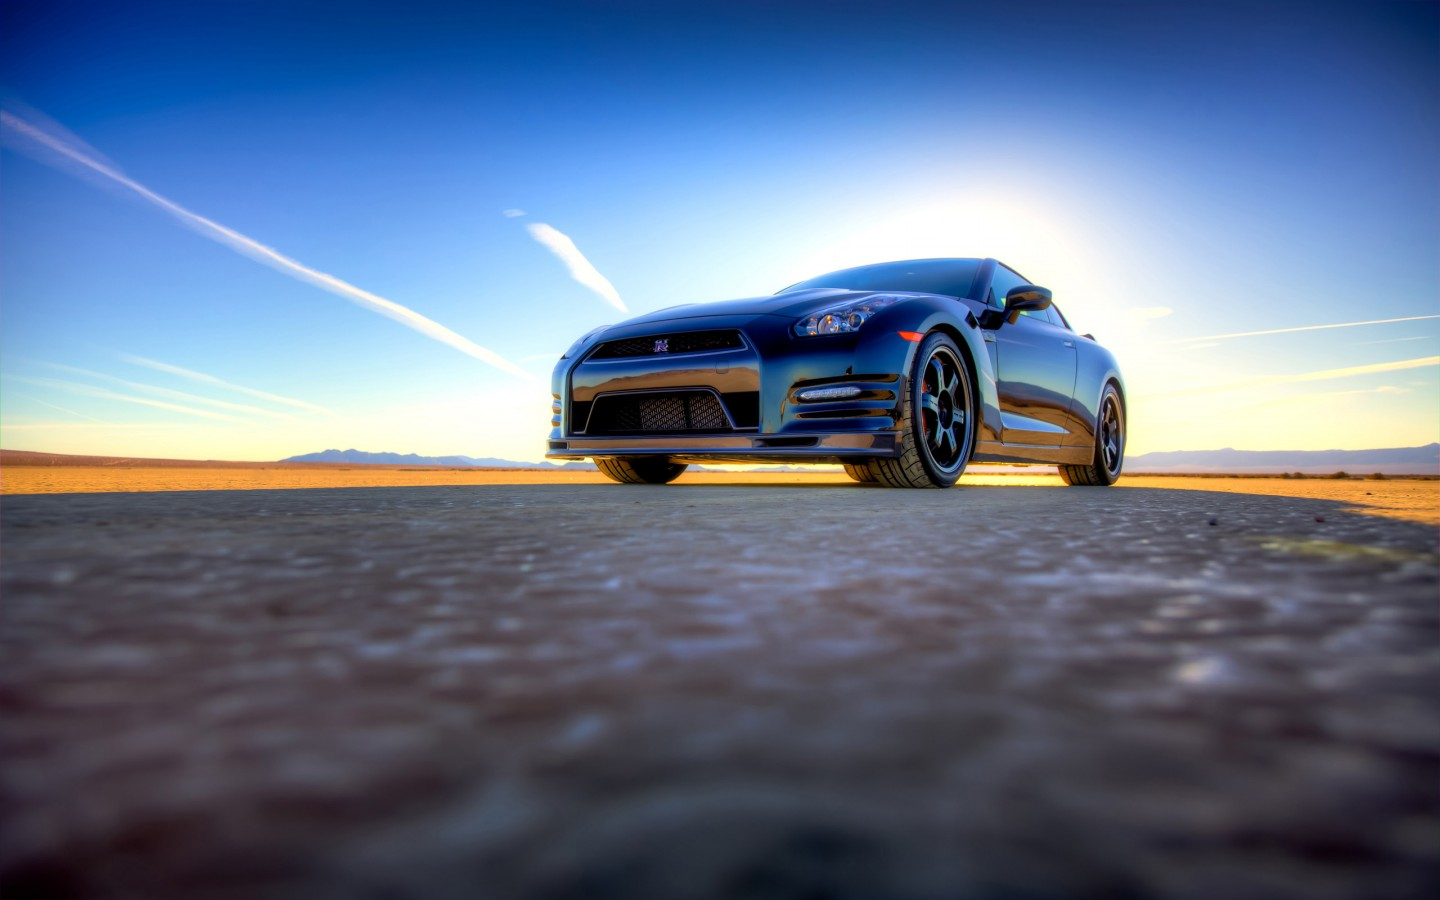 Best 3d Wallpapers For Android 2014 Nissan Gt R Track Edition 2 Wallpaper Hd Car